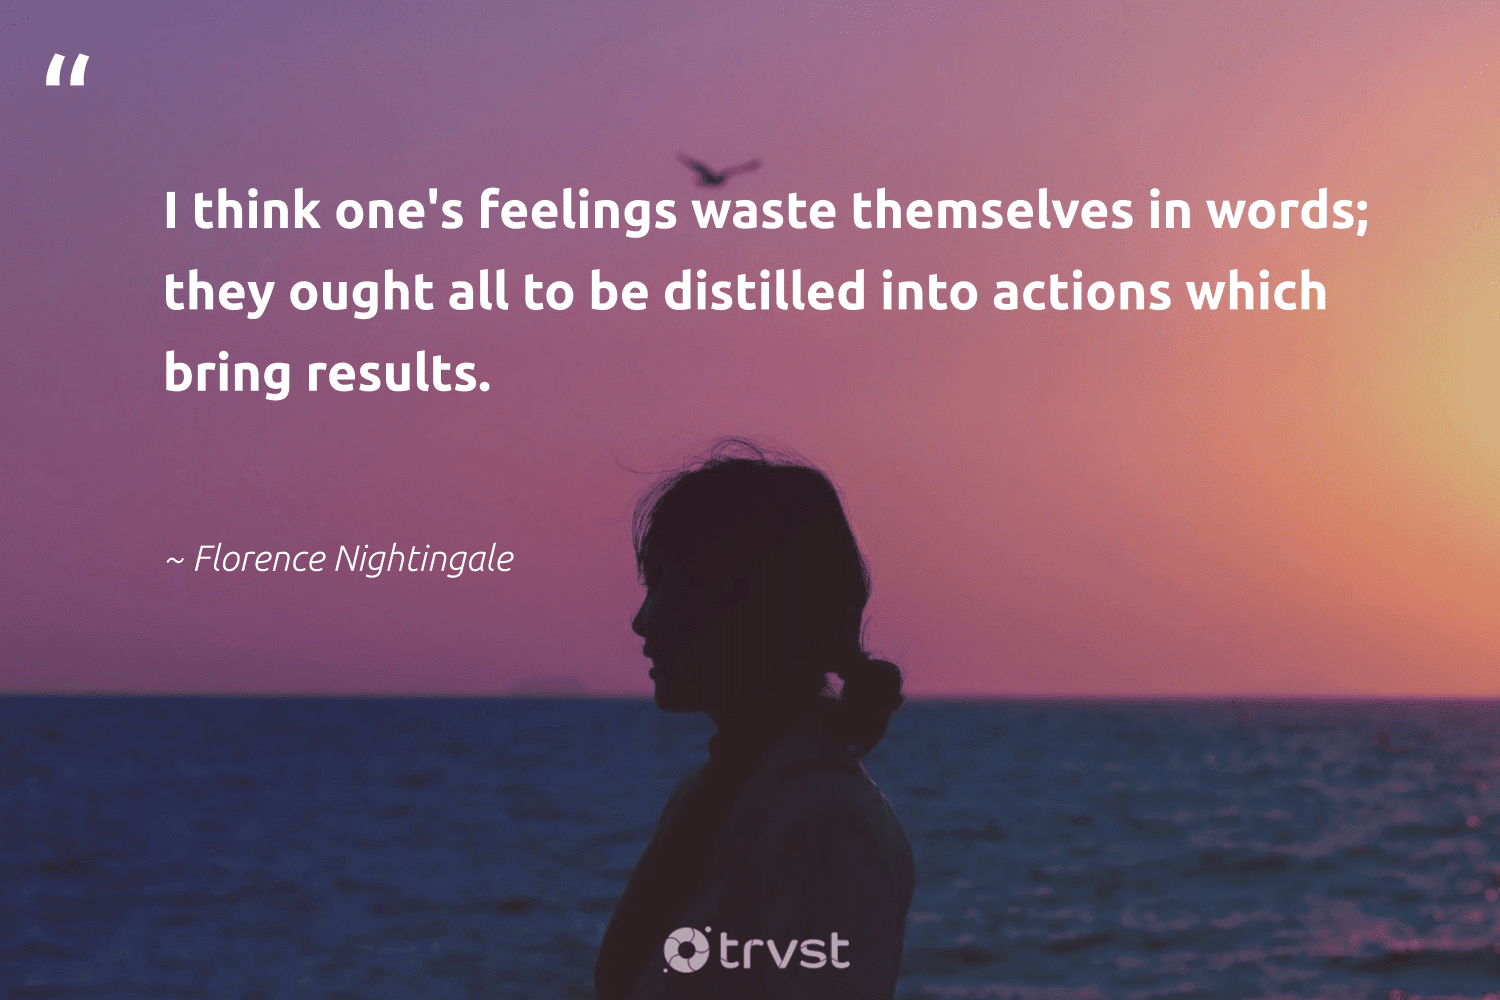 """""""I think one's feelings waste themselves in words; they ought all to be distilled into actions which bring results.""""  - Florence Nightingale #trvst #quotes #waste #results #health #dosomething #togetherwecan #takeaction #begreat #socialchange #changemakers #collectiveaction"""